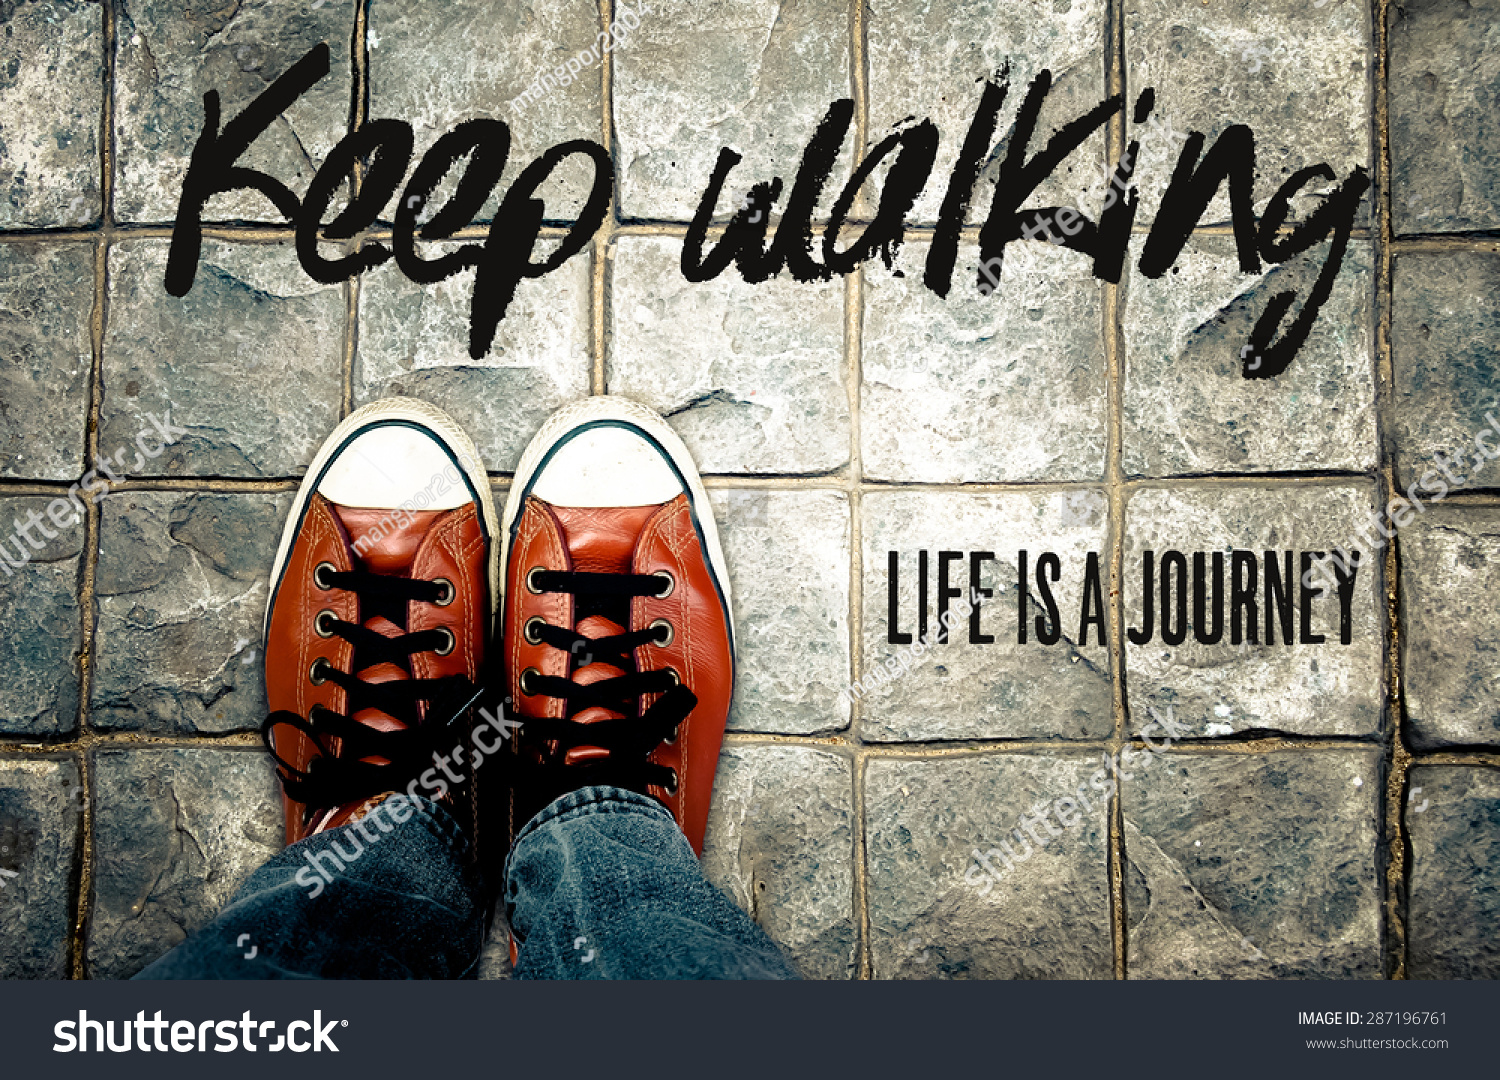 Inspirational Quotes About Lifes Journey Amazing Keep Walking Life Journey Inspiration Quote Stock Photo 287196761